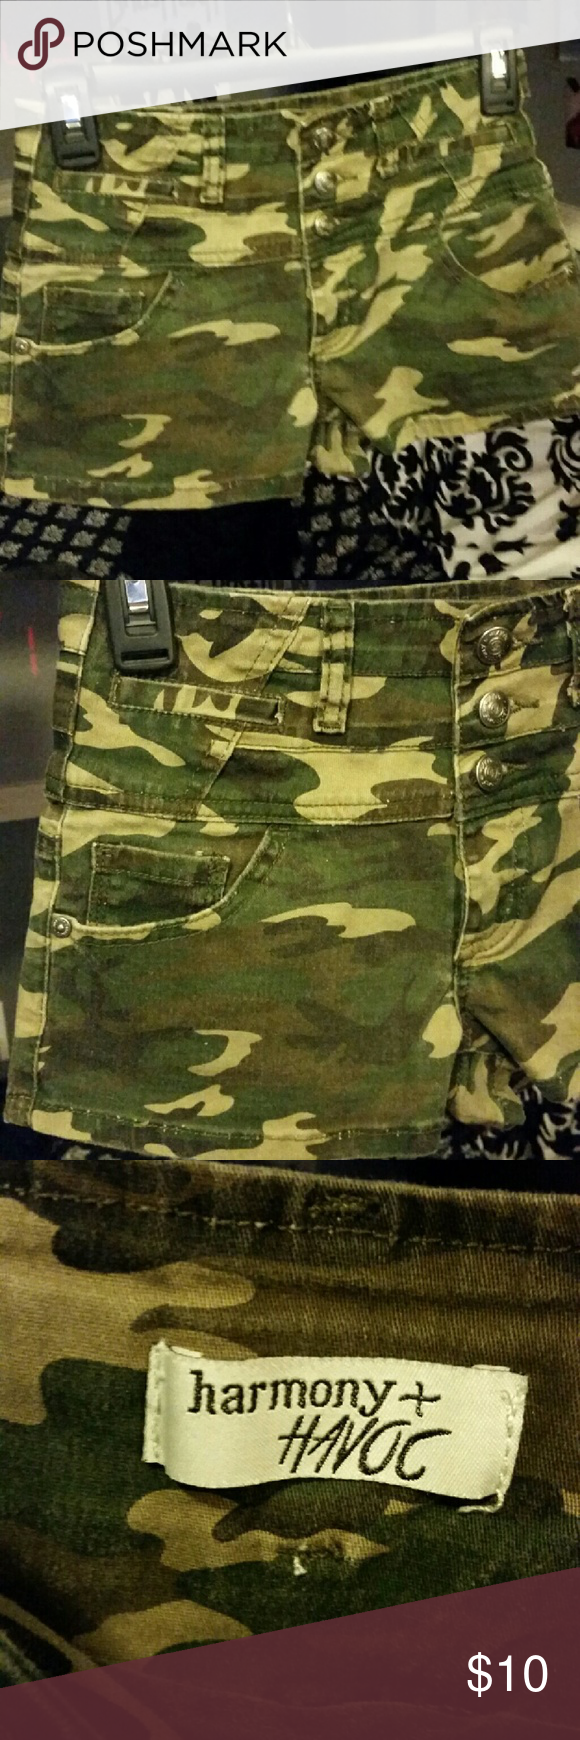 Camo high waisted shorts Camo high waisted shorts worn once, two small for me harmony + havoc  Shorts